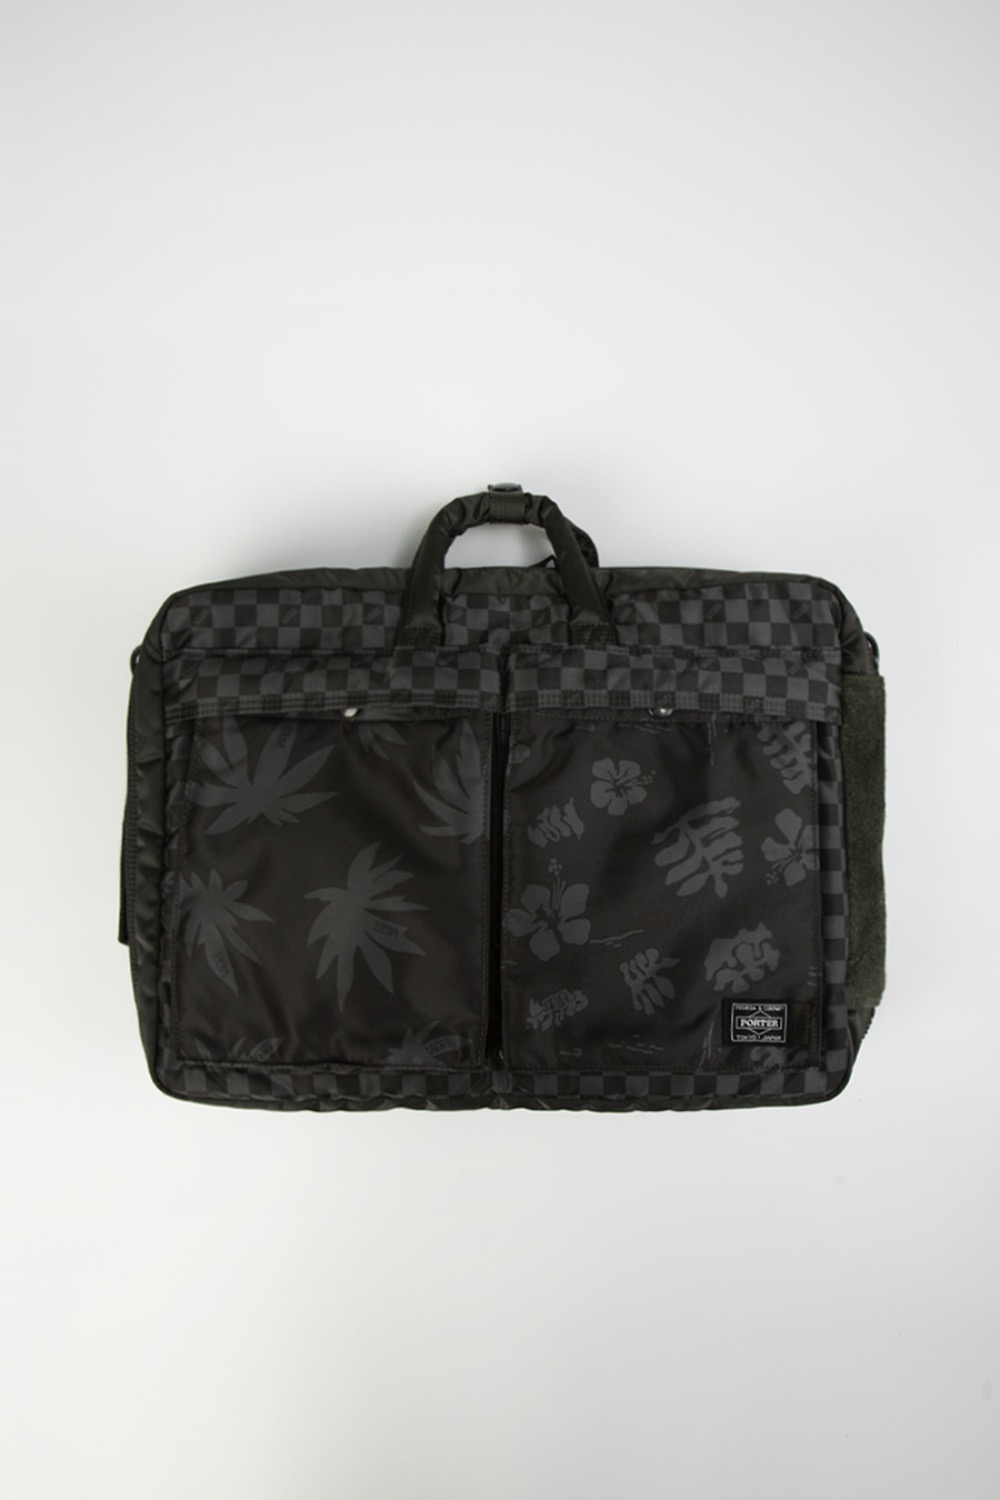 VANS X PORTER BRIEF CASE